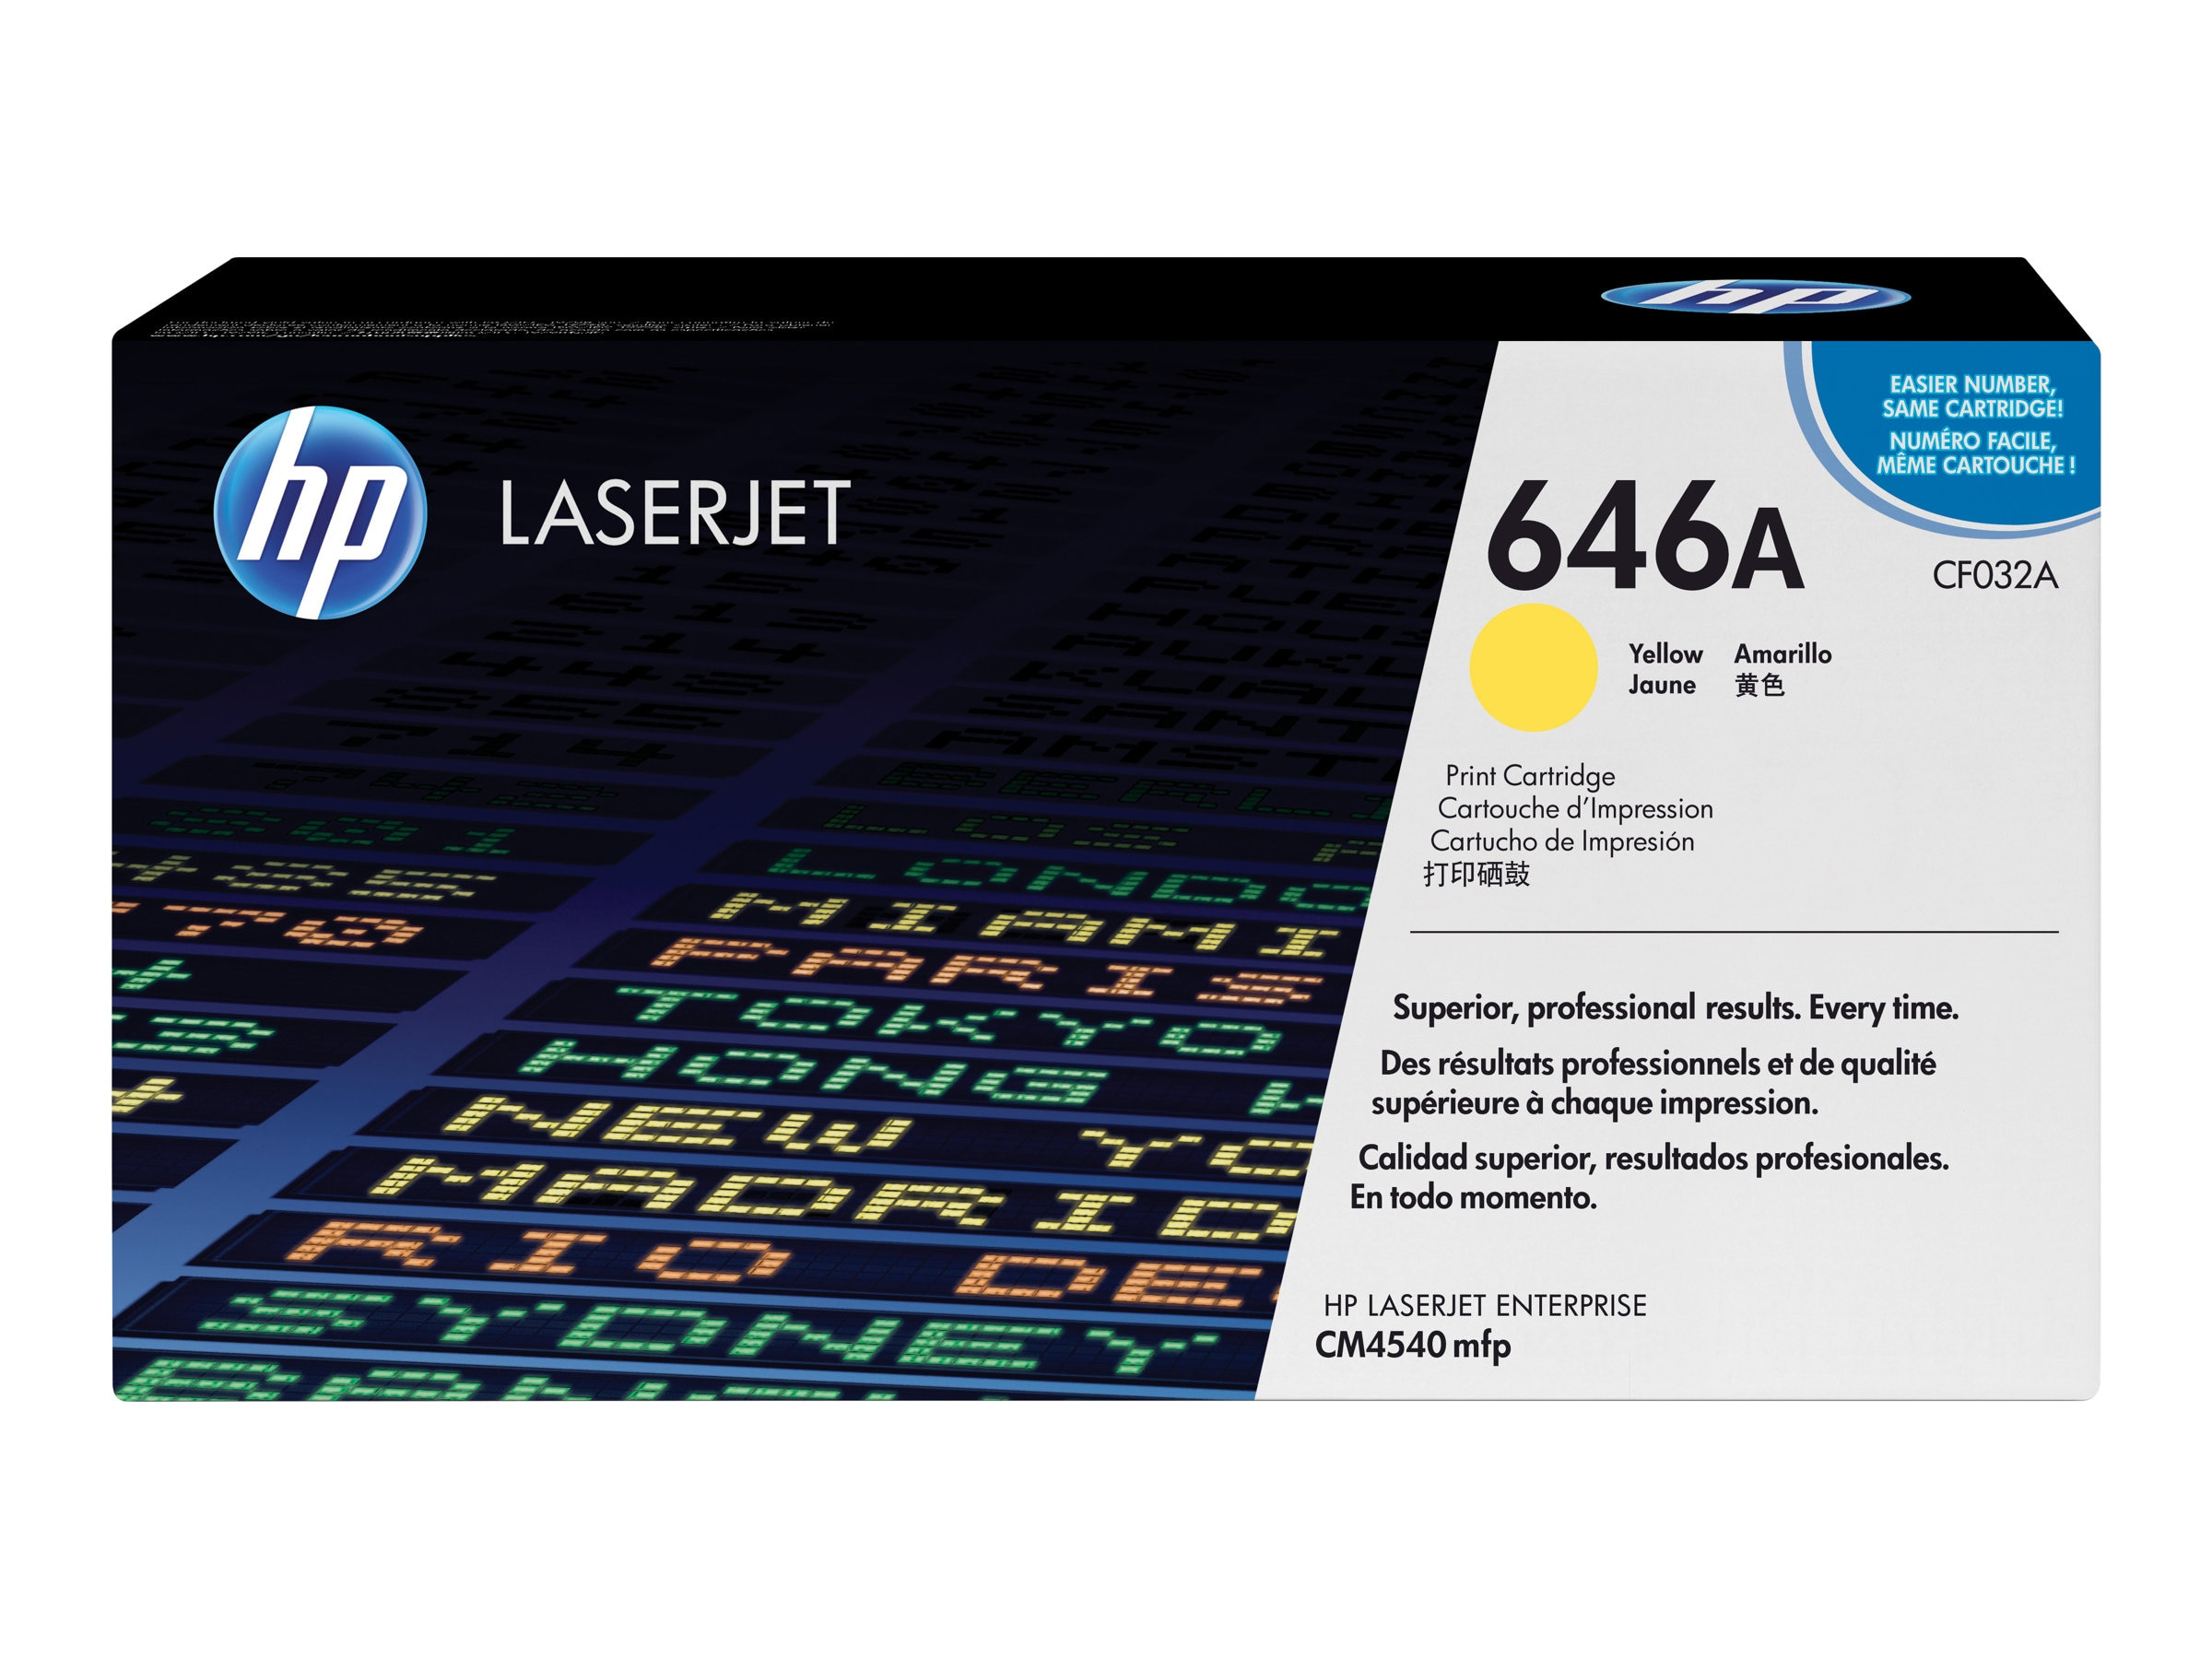 HP 646A (CF032A) Yellow Original LaserJet Toner Cartridge for HP LaserJet CM4540 MFP Series